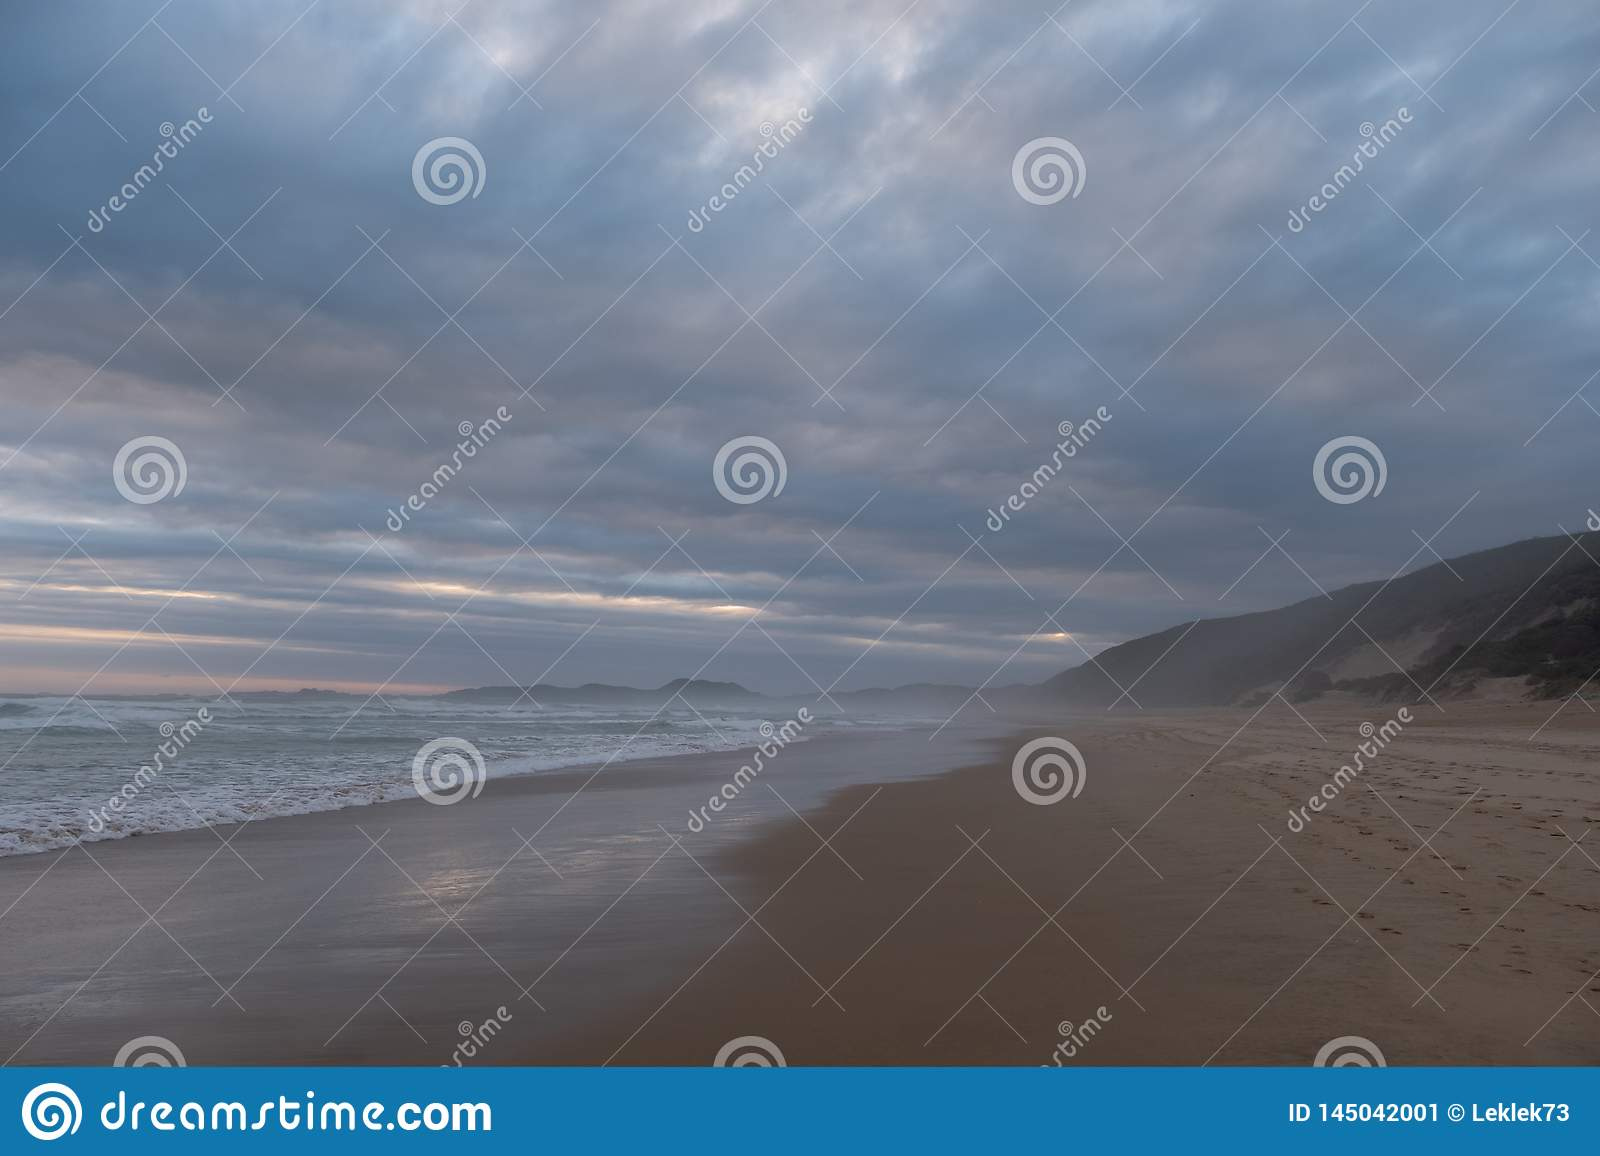 Quiet sandy beach at Brenton on Sea, Knysna, photographed at sundown, South Africa.